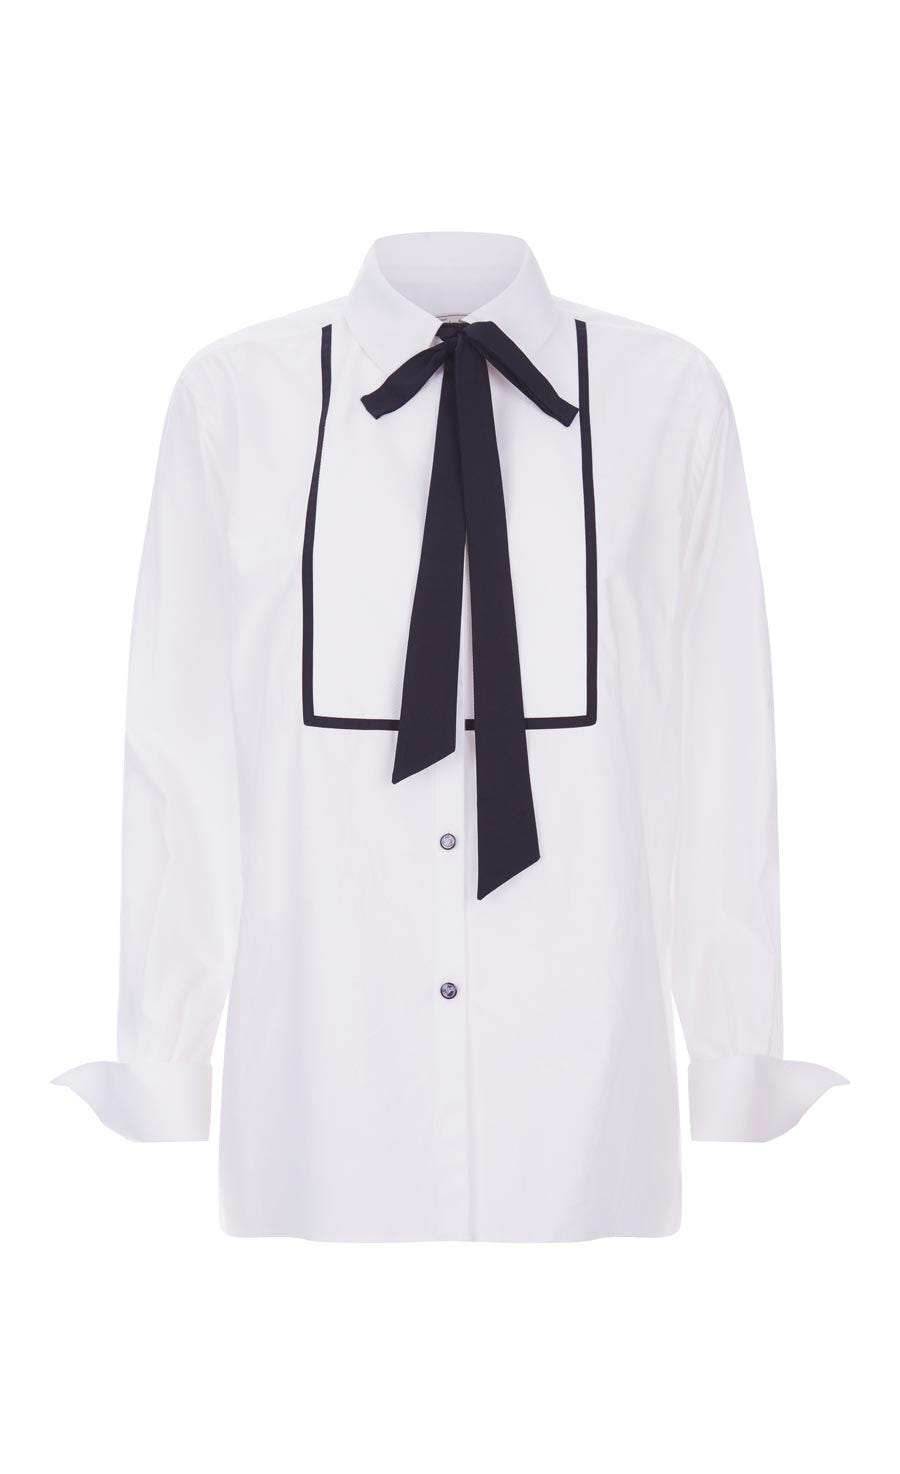 Enigma Shirt, White